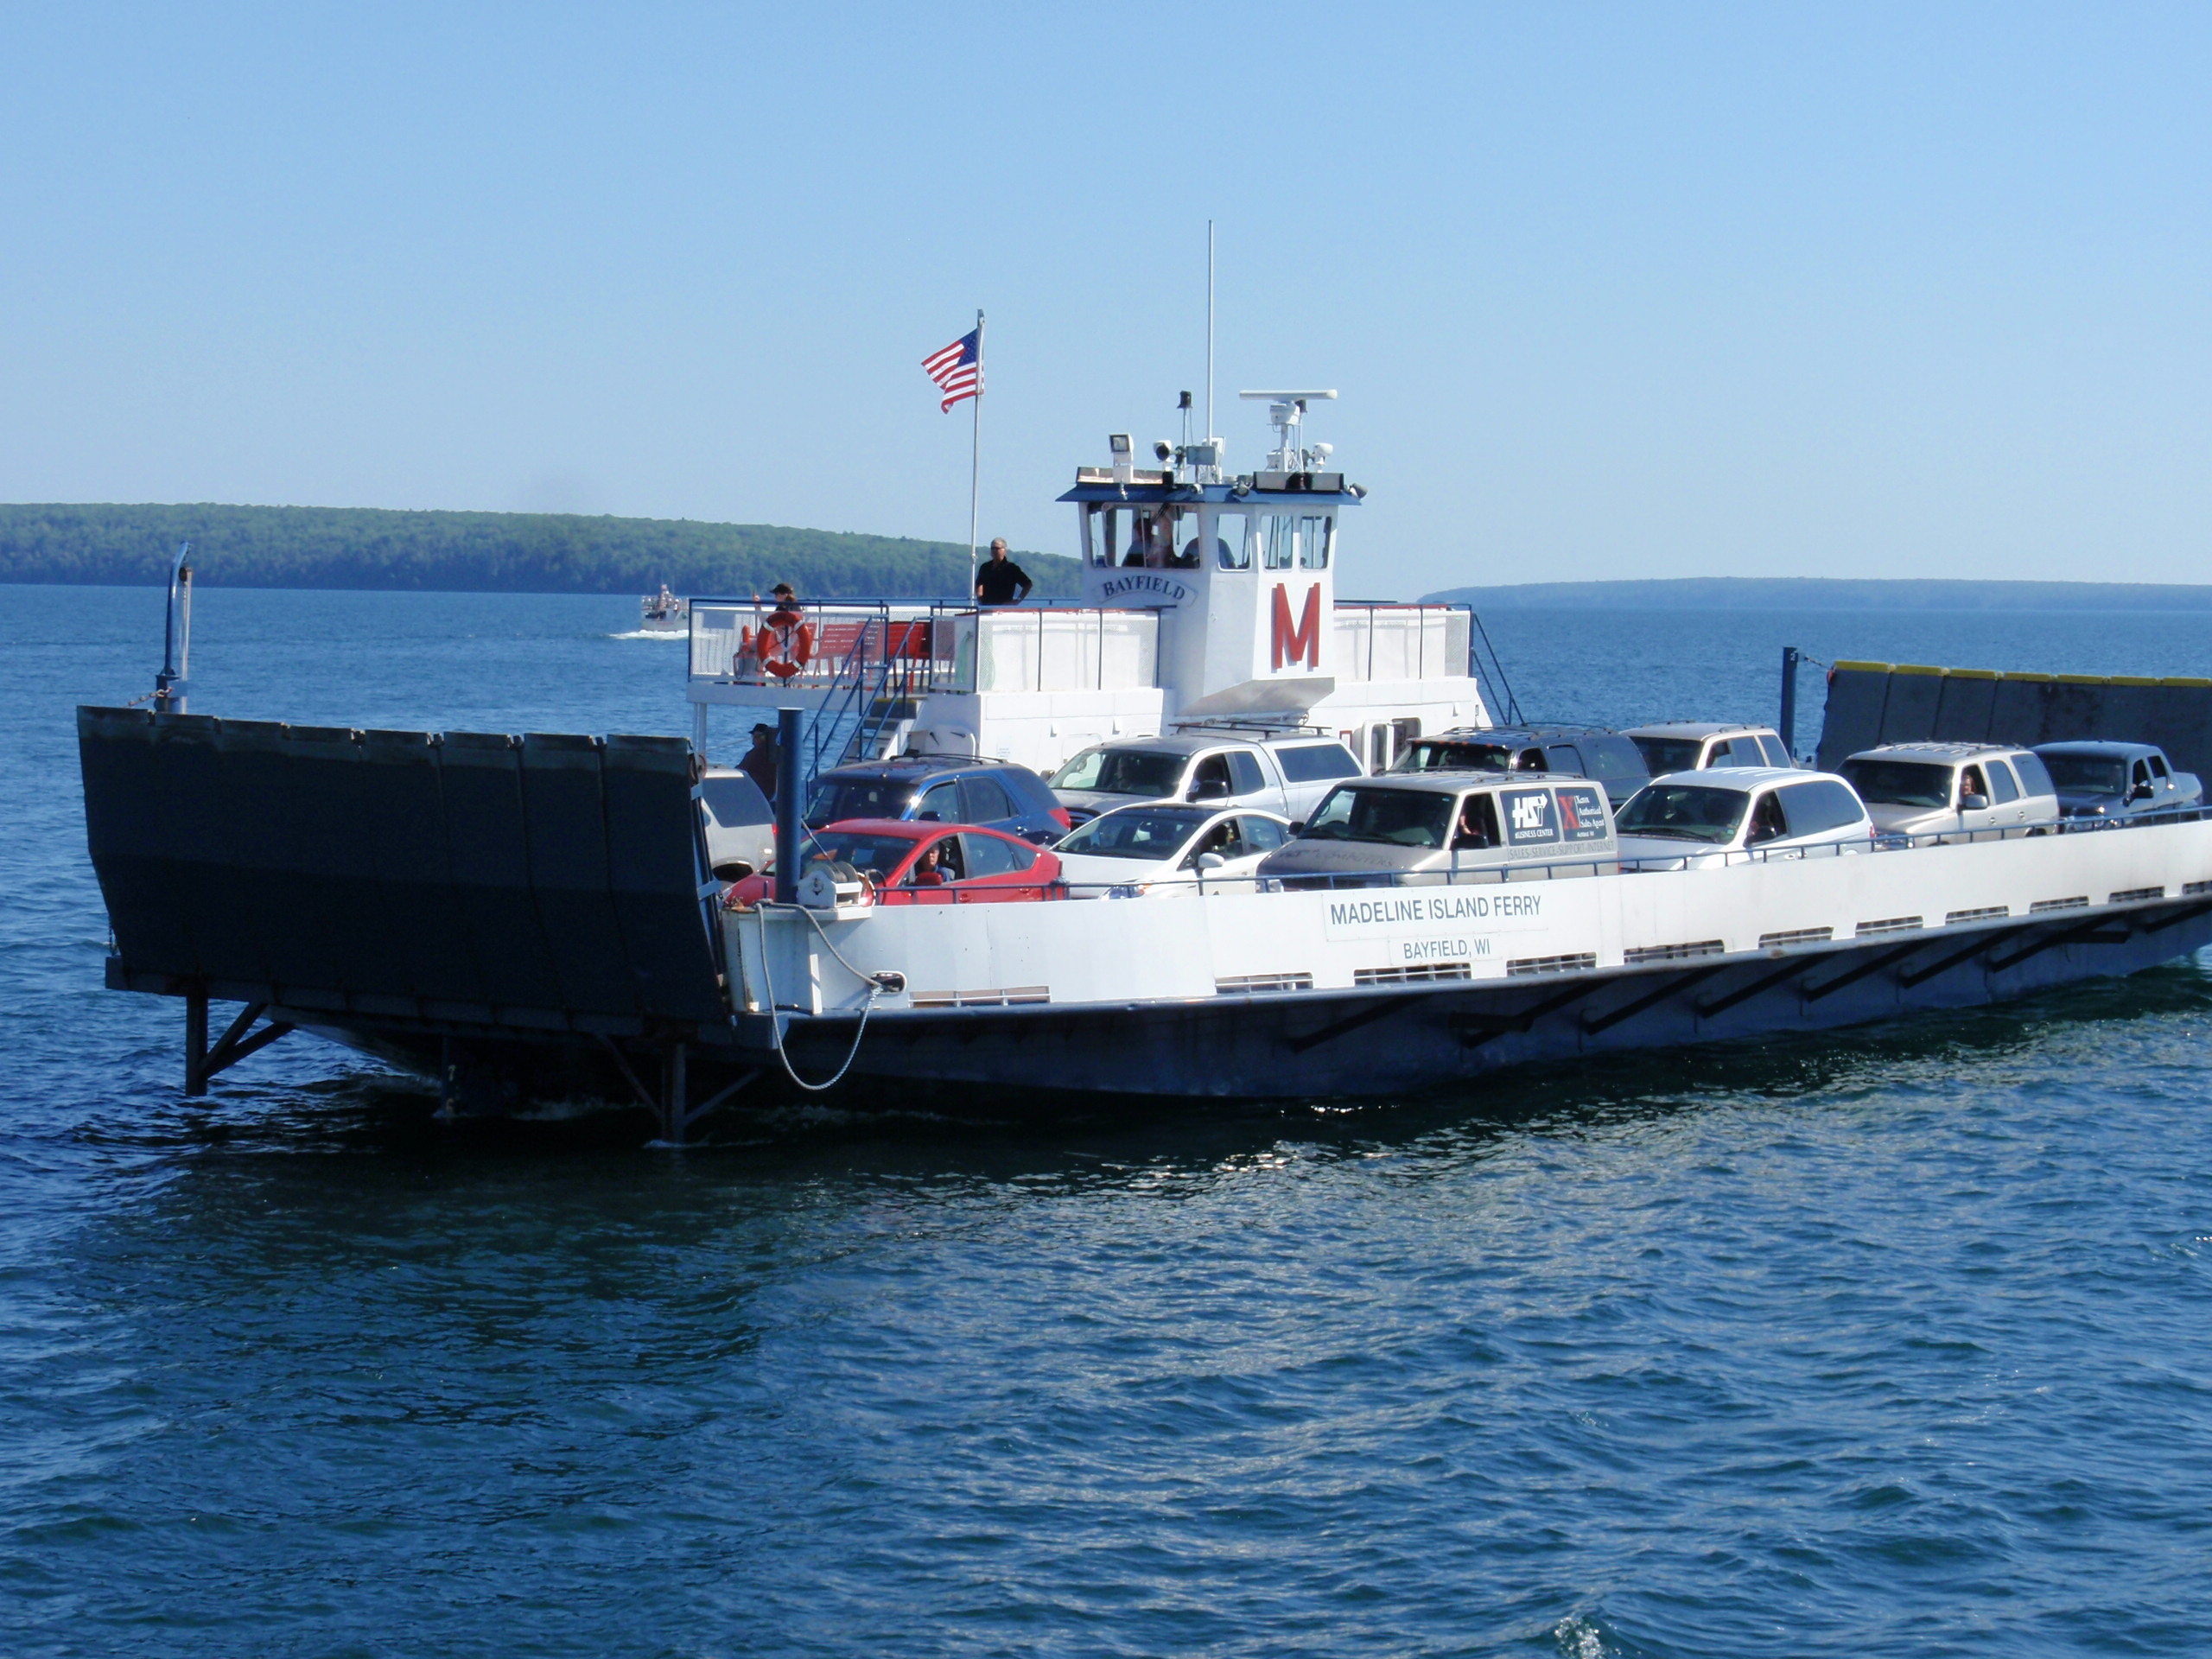 Ferry Schedule To Madeline Island